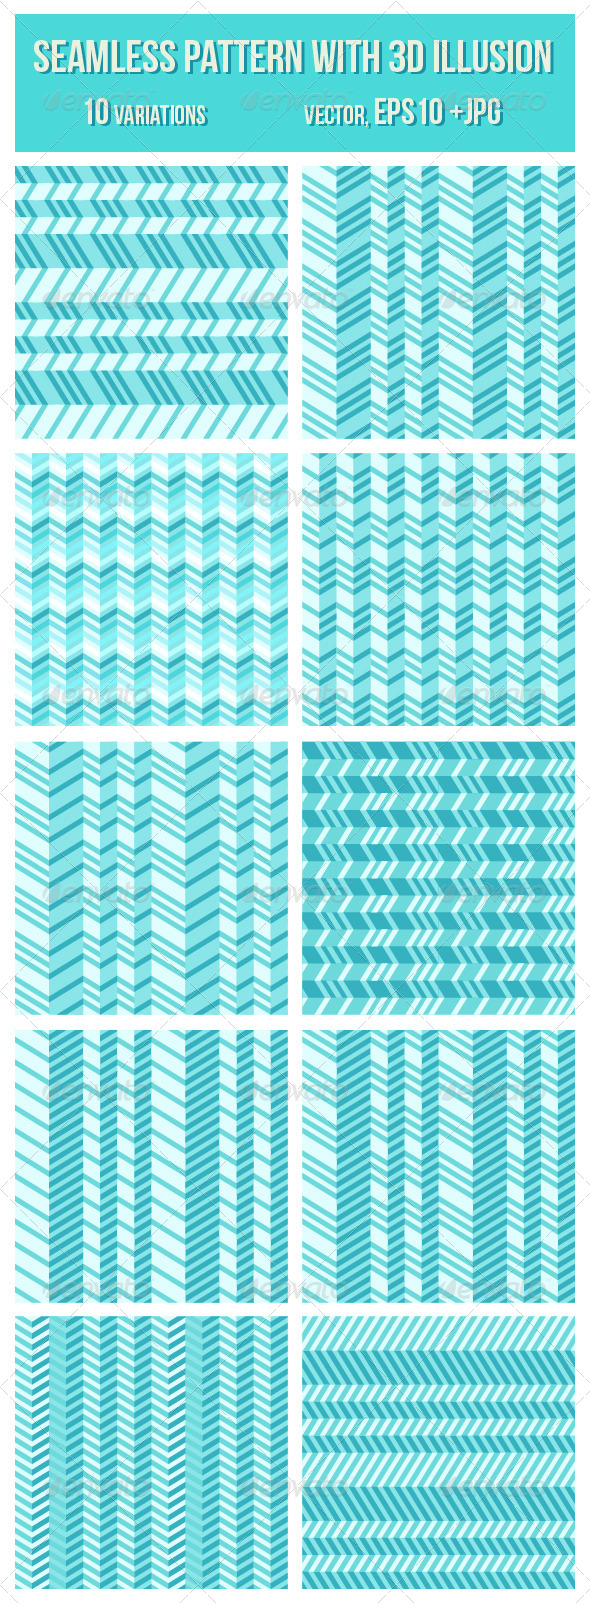 GraphicRiver Geometrical Seamless Pattern with 3D Illusion 4484098